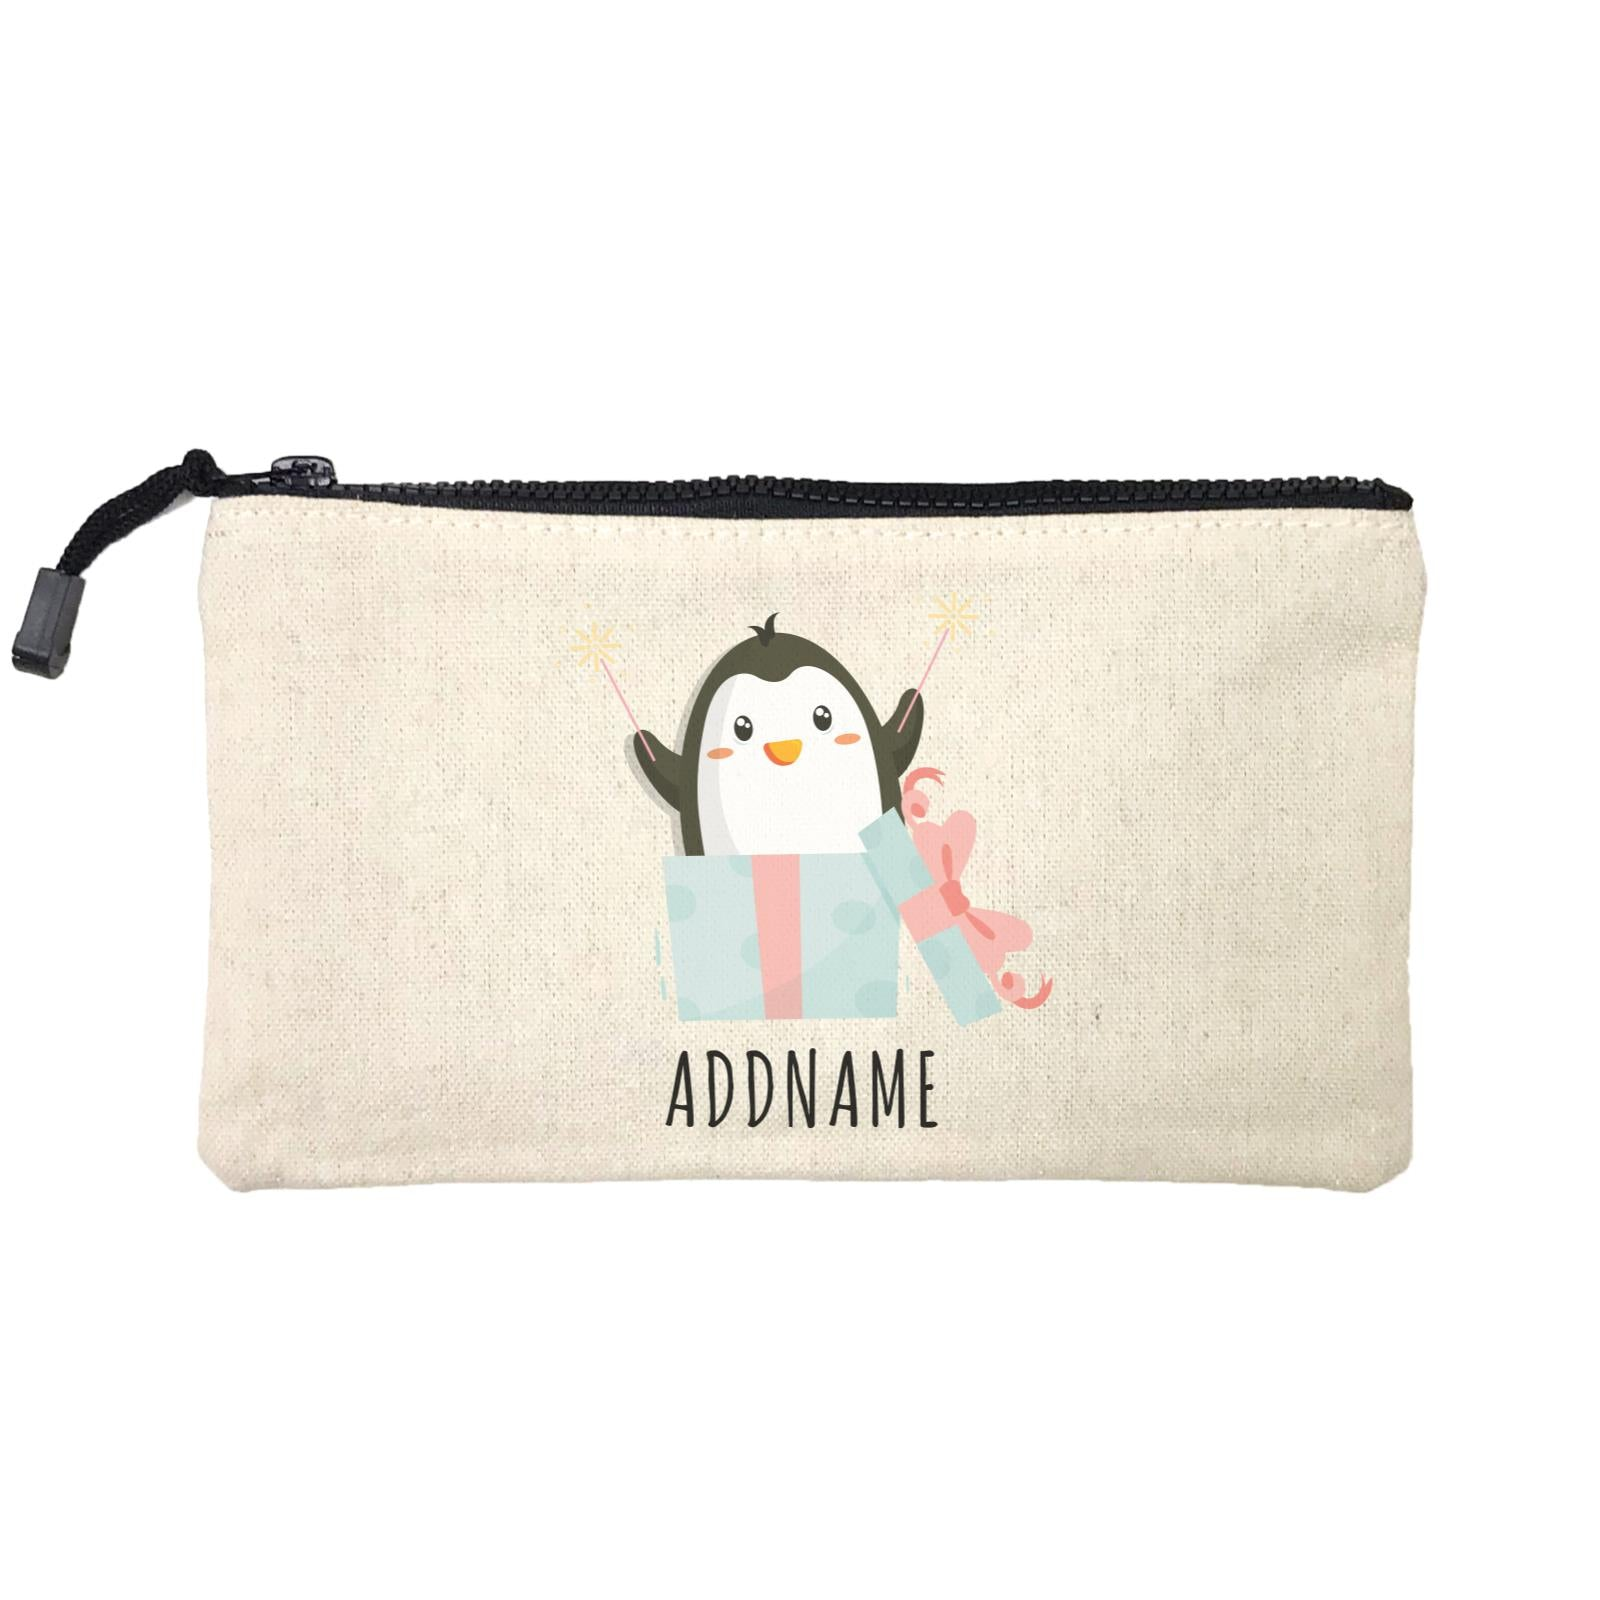 Birthday Cute Penguin Taking Fireworks In Present Box Addname Mini Accessories Stationery Pouch